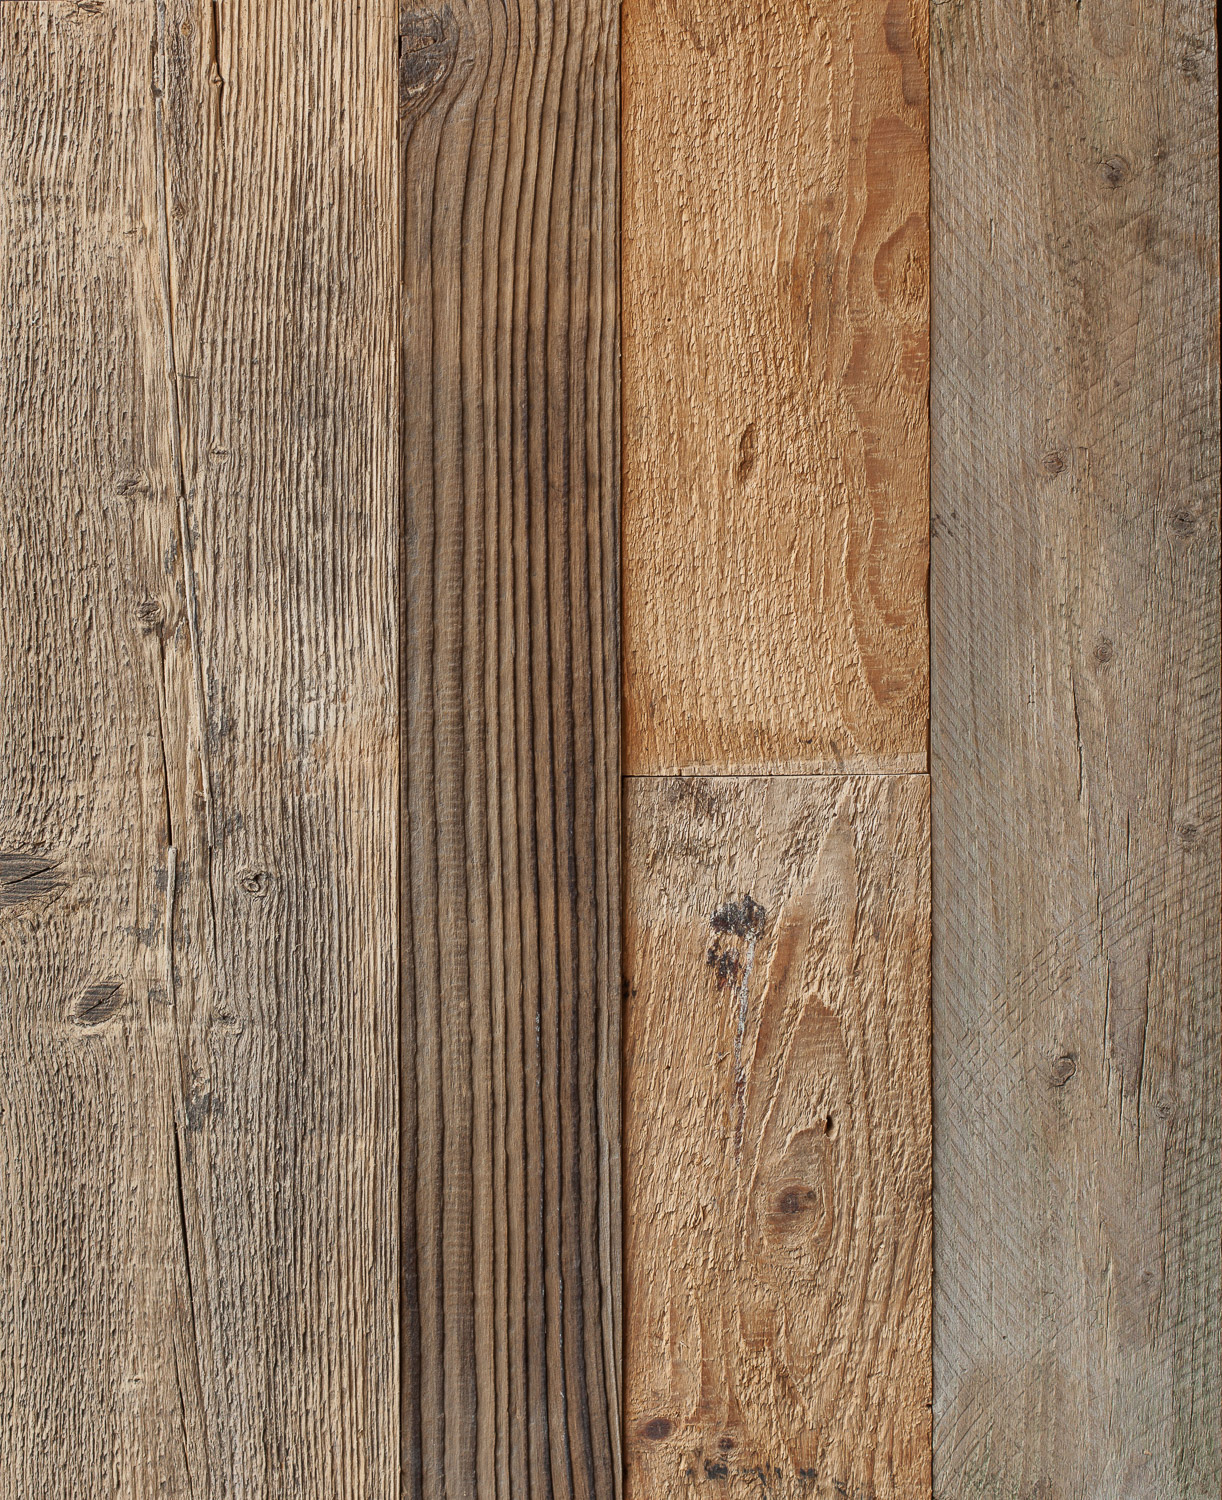 Reclaimed Pine Wall Cladding – Brown 15mm